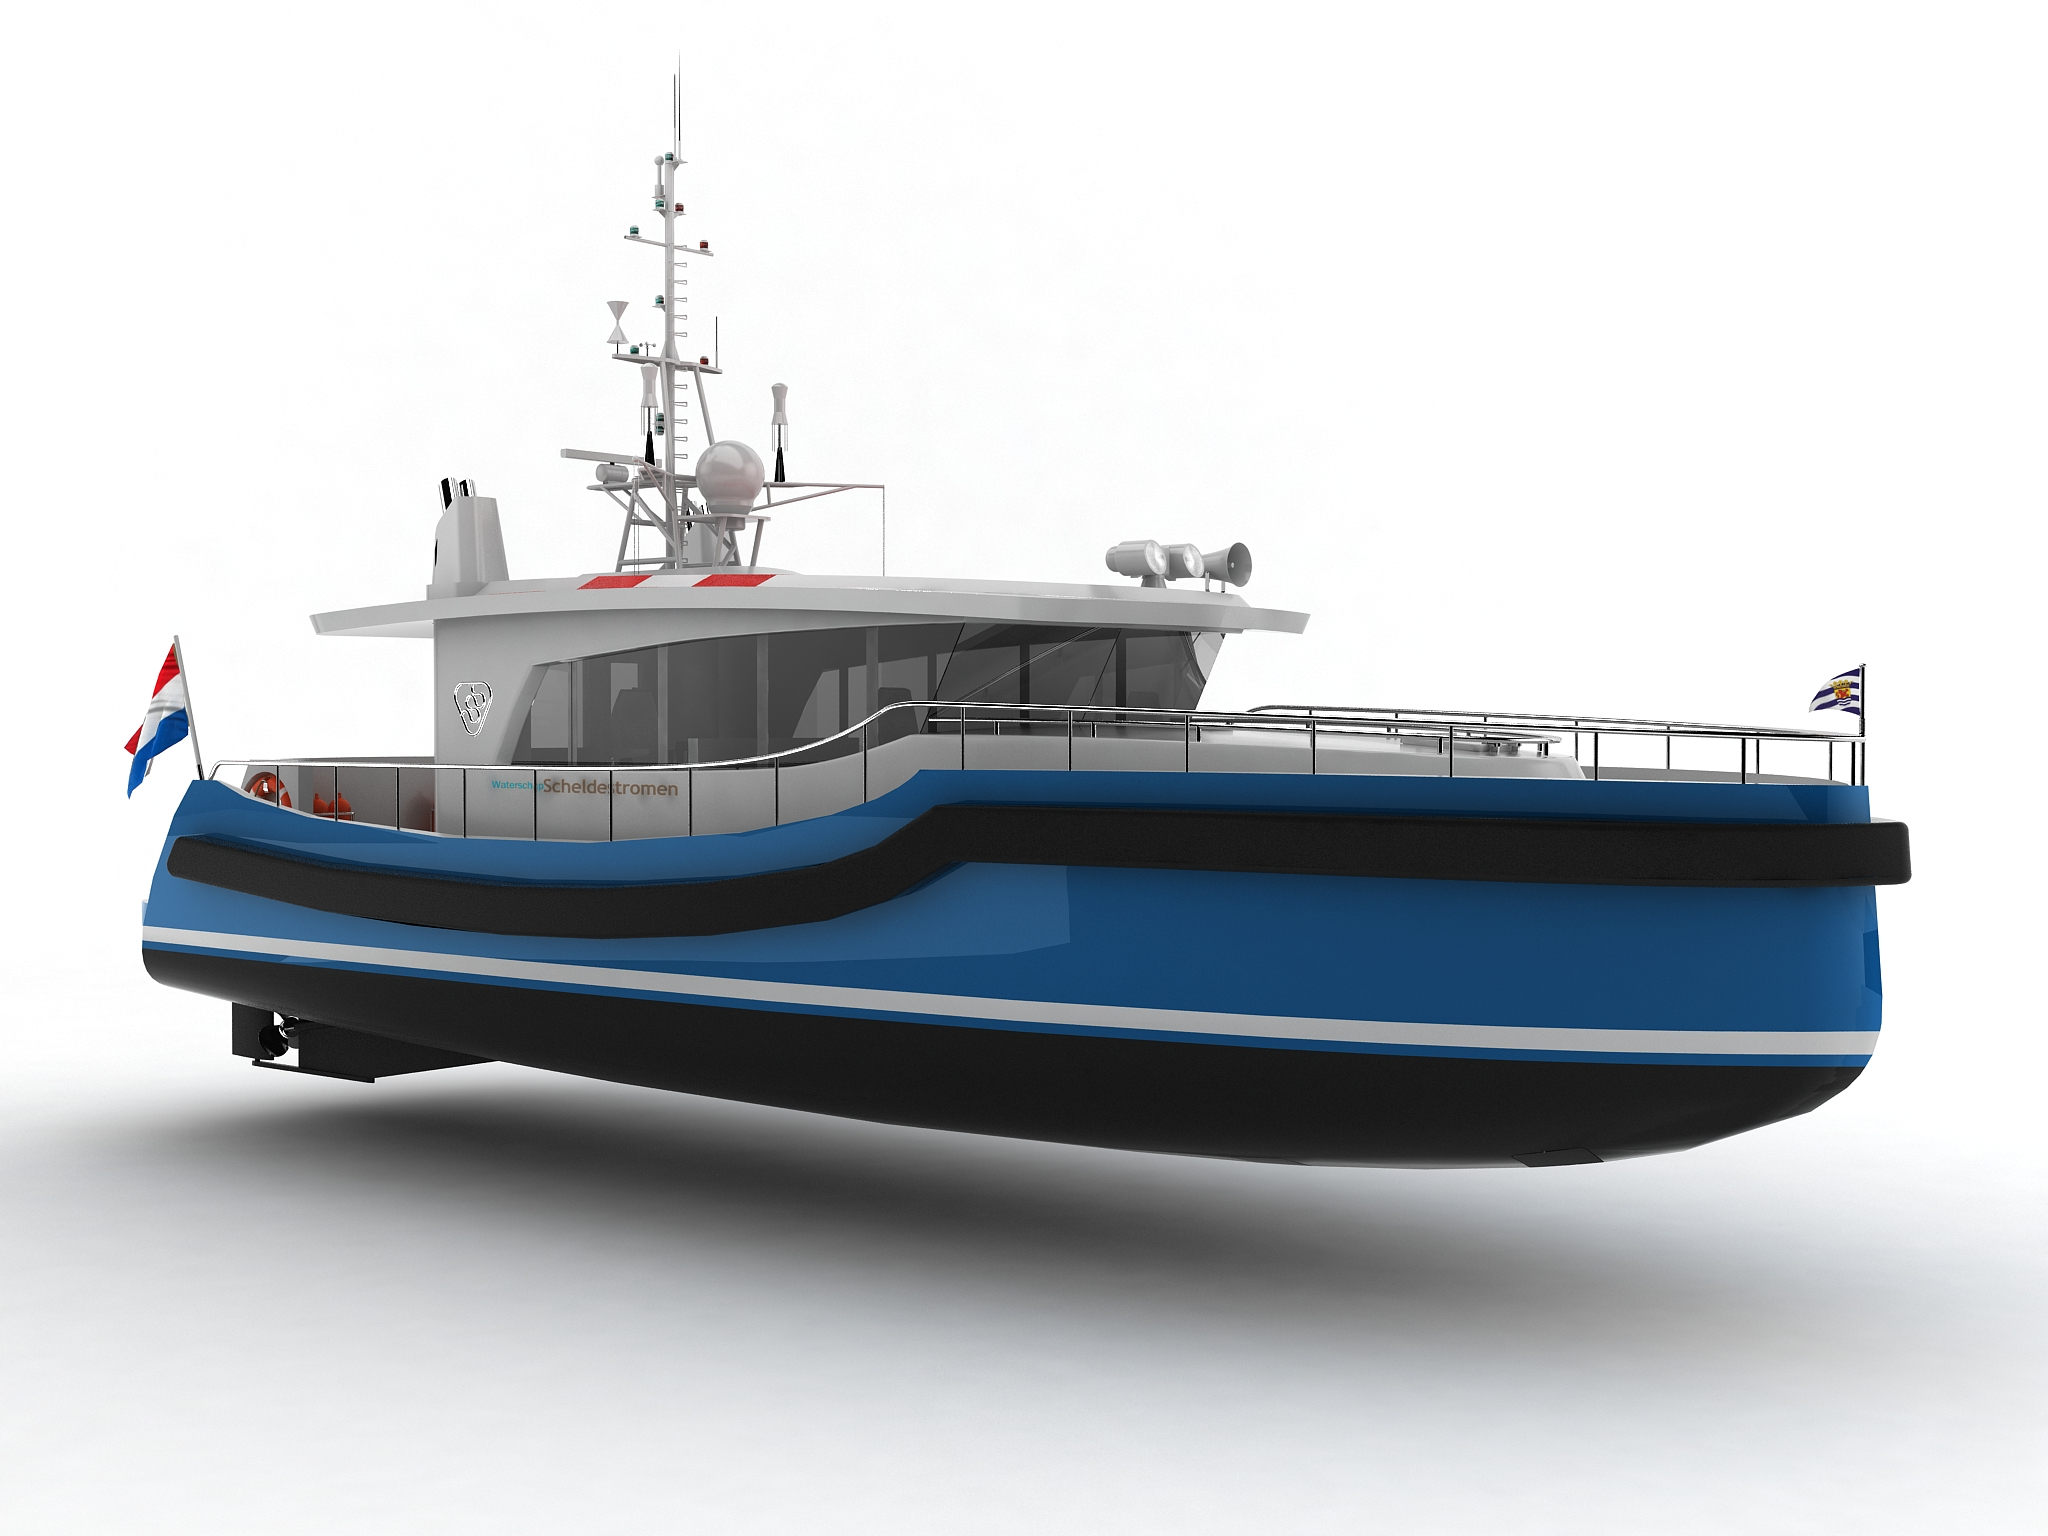 Holland Shipyards to build survey vessel for Dutch water authority